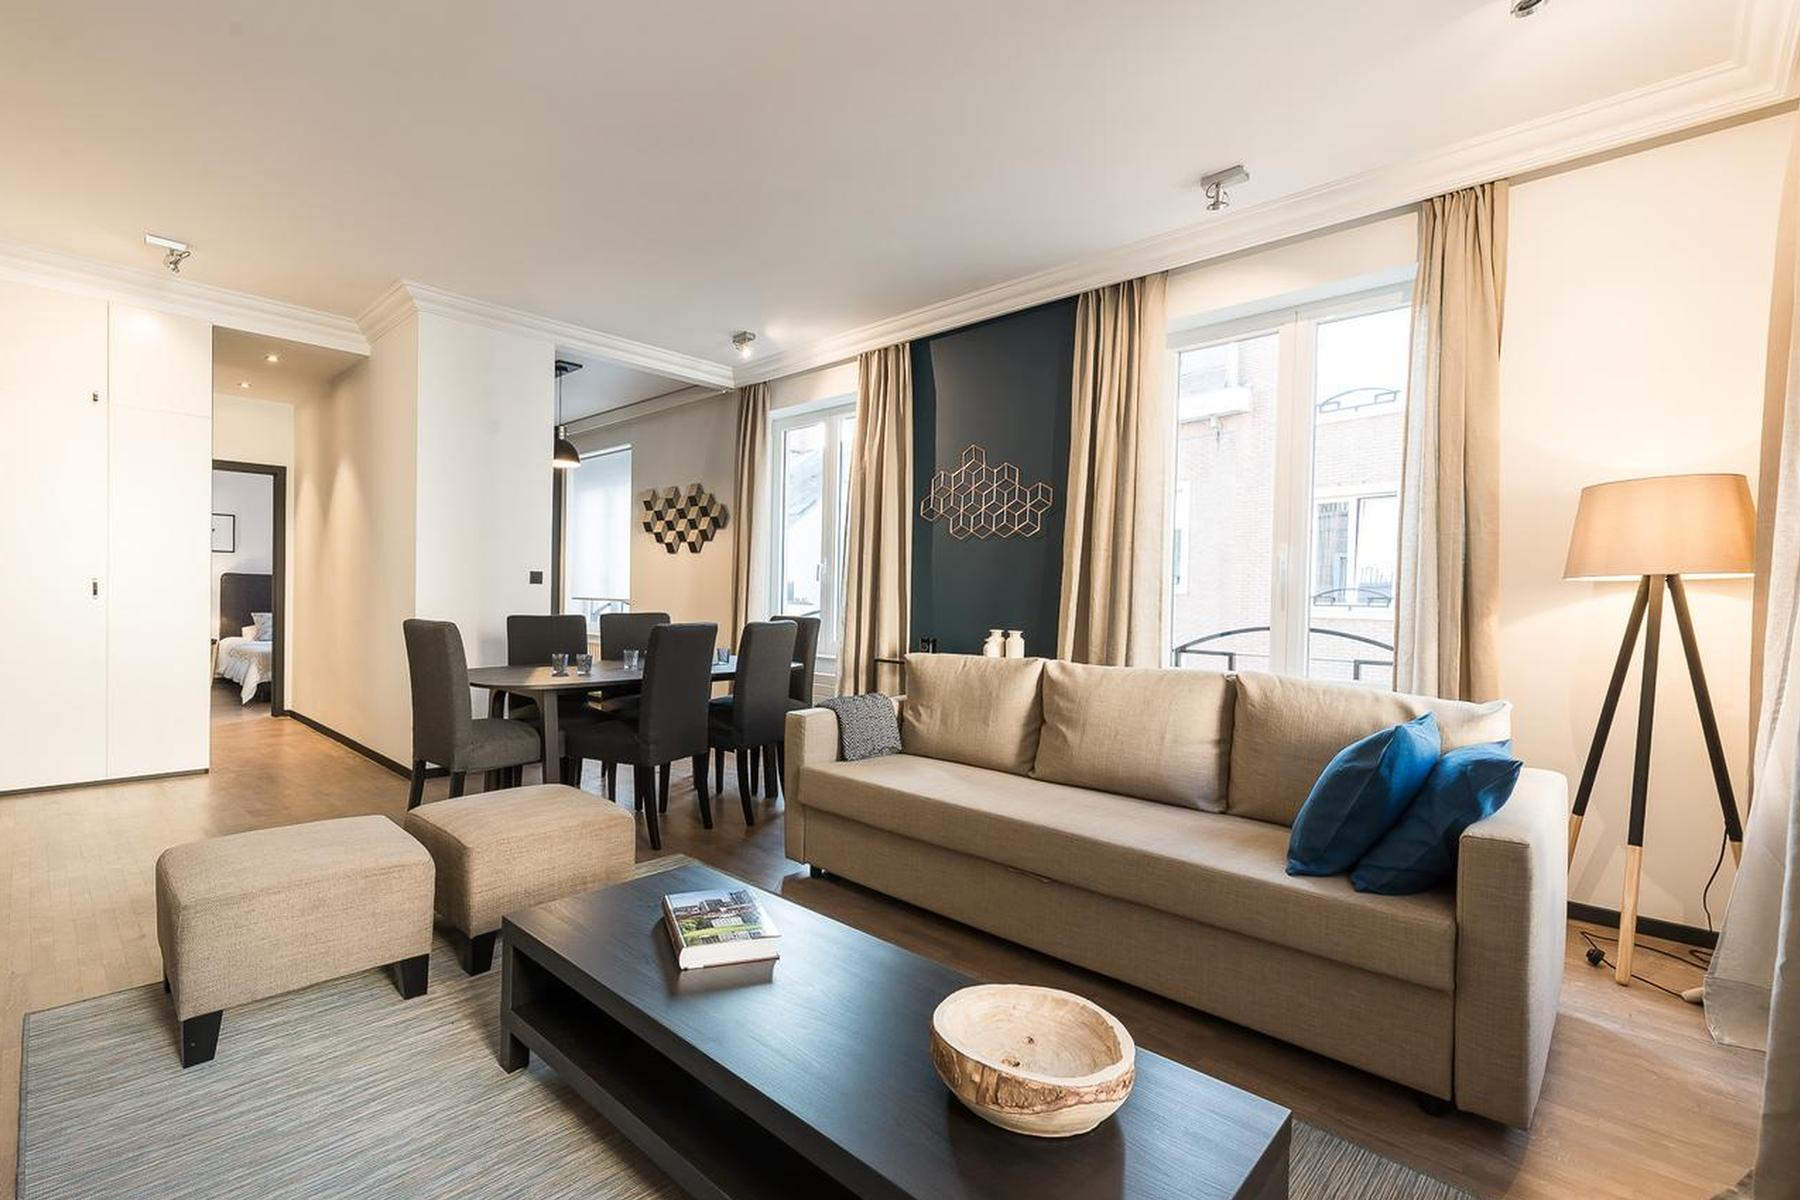 Apartment for Rent at Ixelles I Avenue Louise 200 Avenue Louise Brussels, Brussels 1050 Belgium